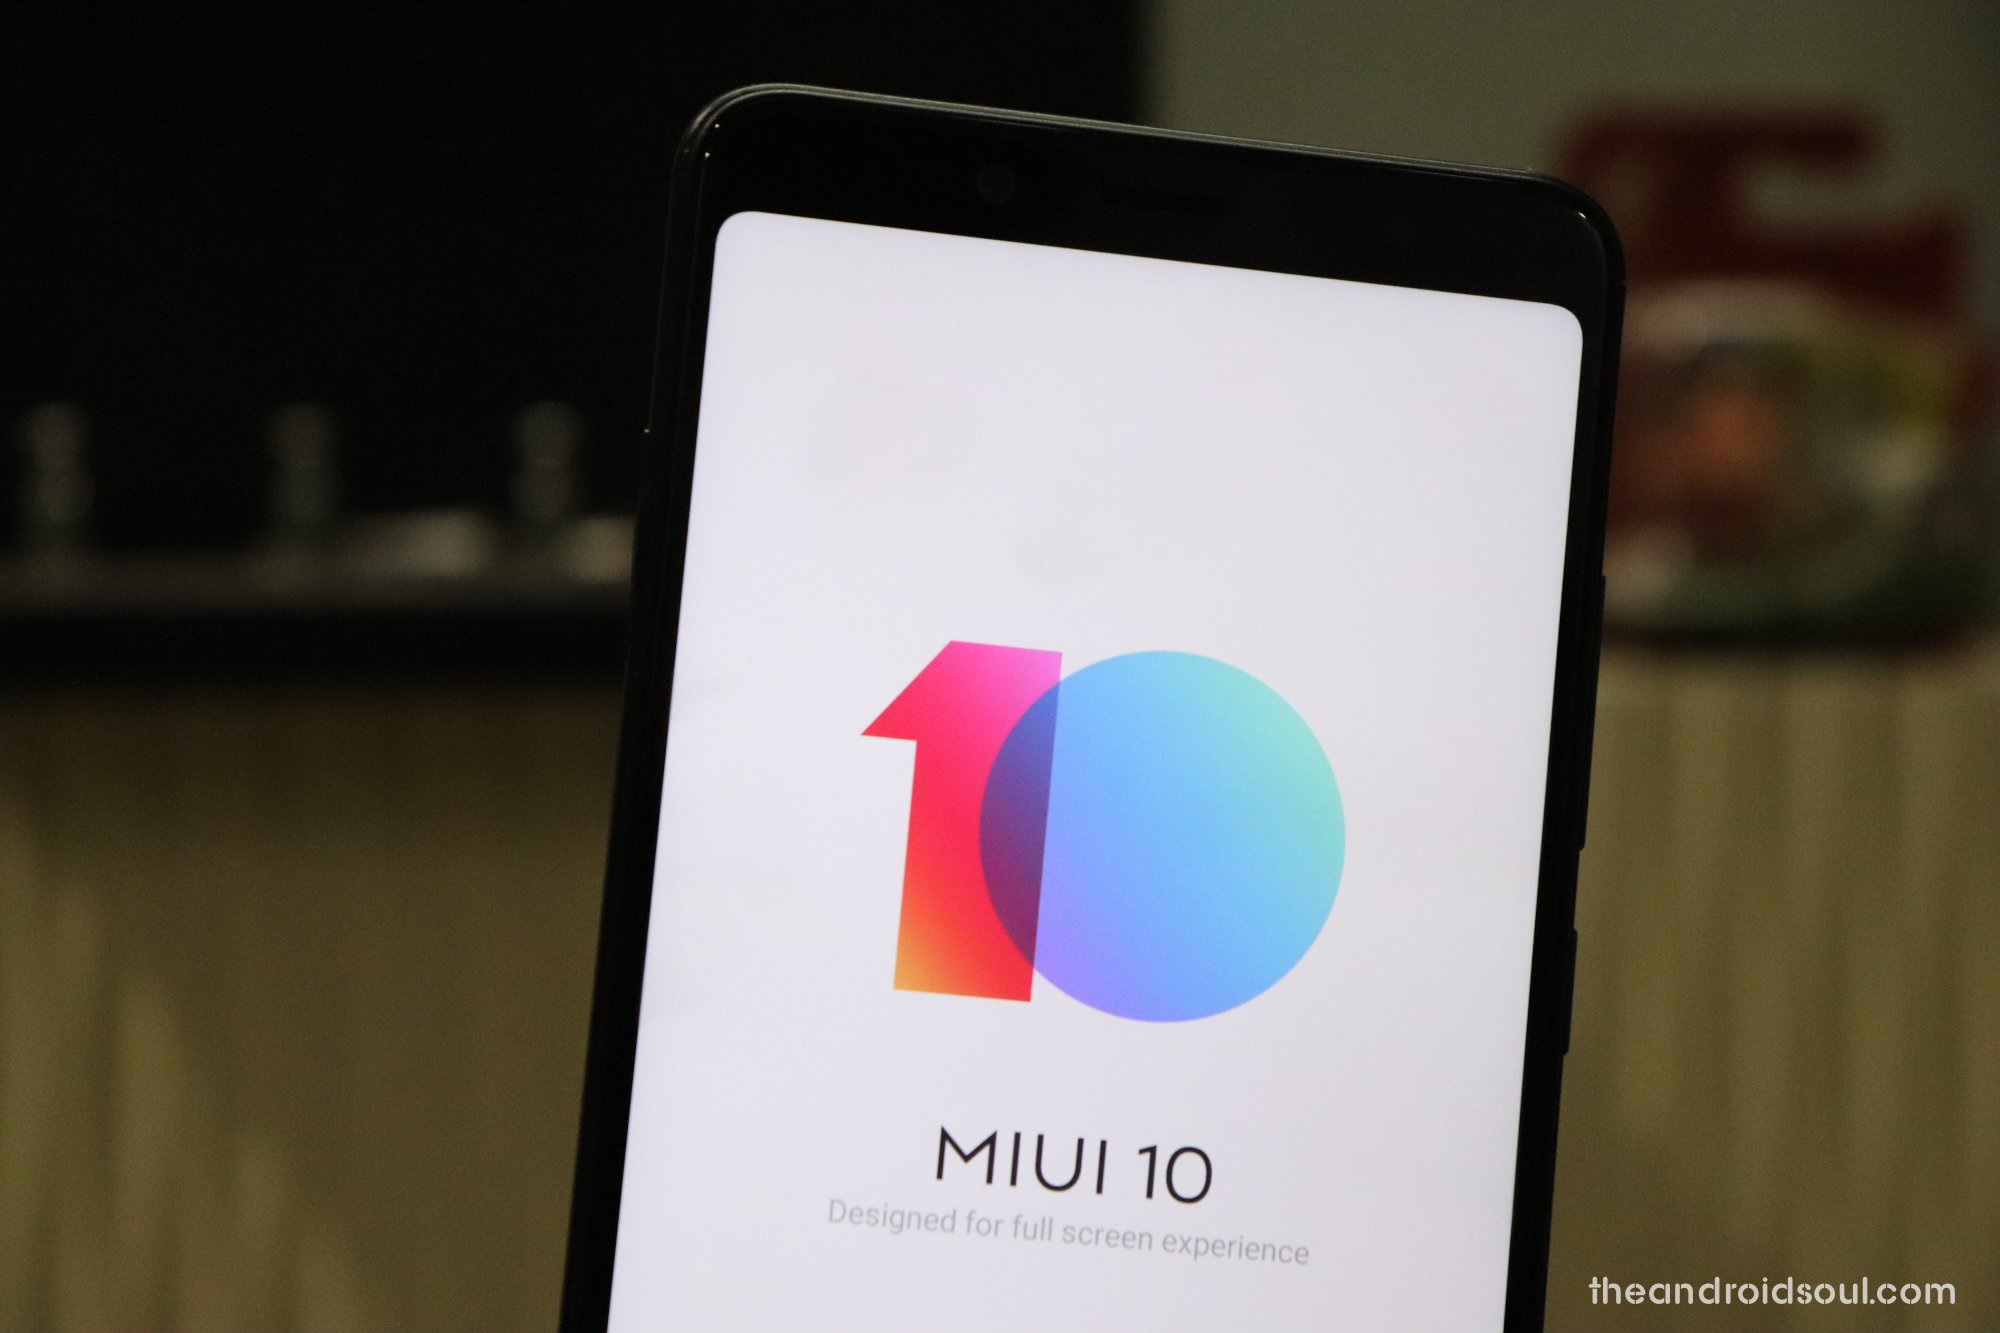 Mi Note 3 and Redmi 3S MIUI 10 update